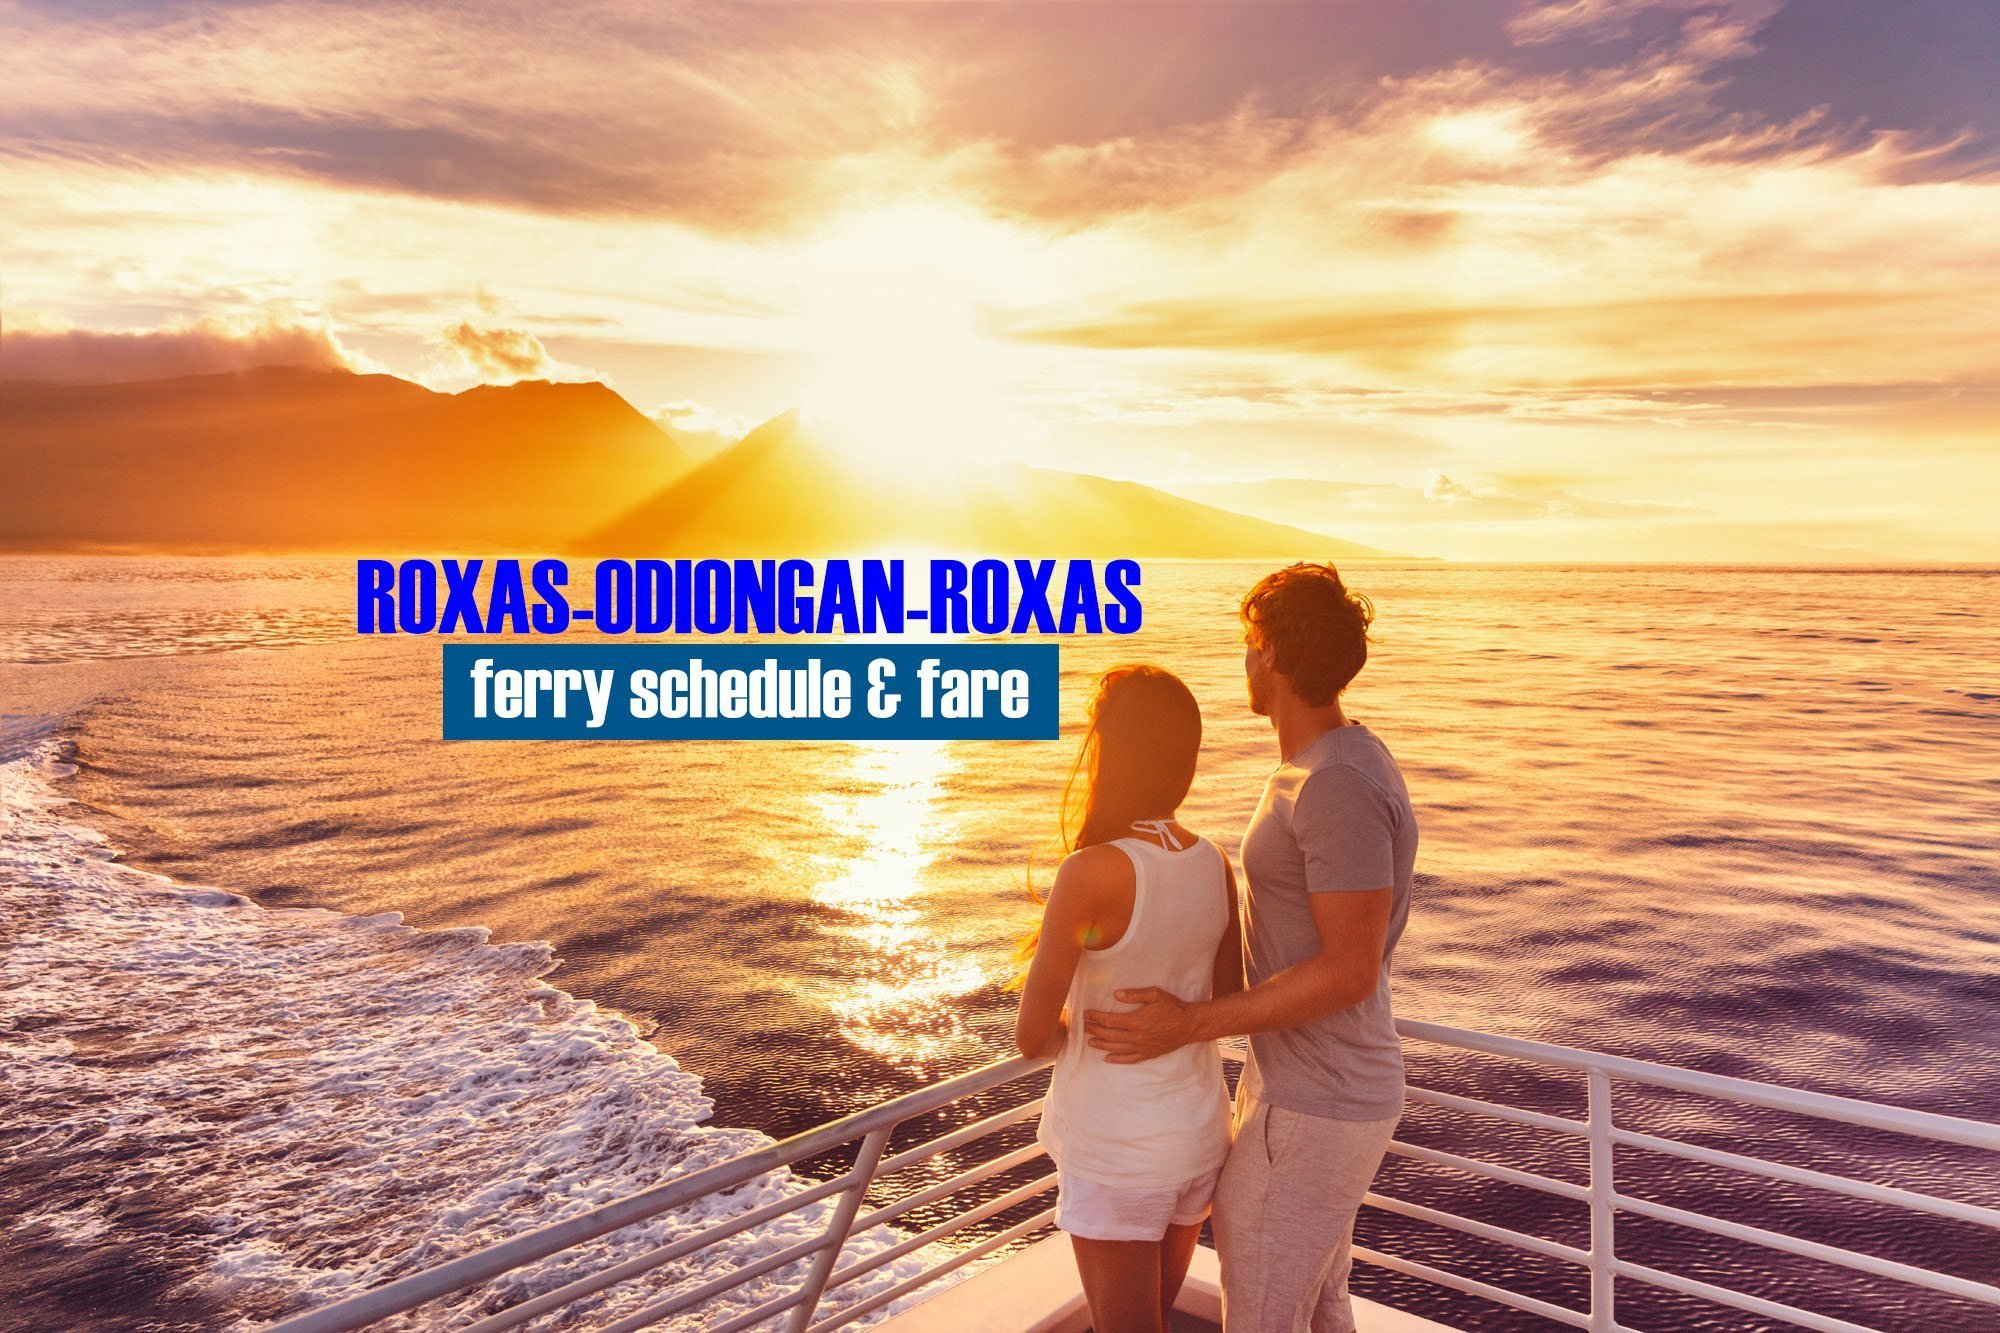 Roxas to Odiongan: 2019 Ferry Schedule & Fare Rates